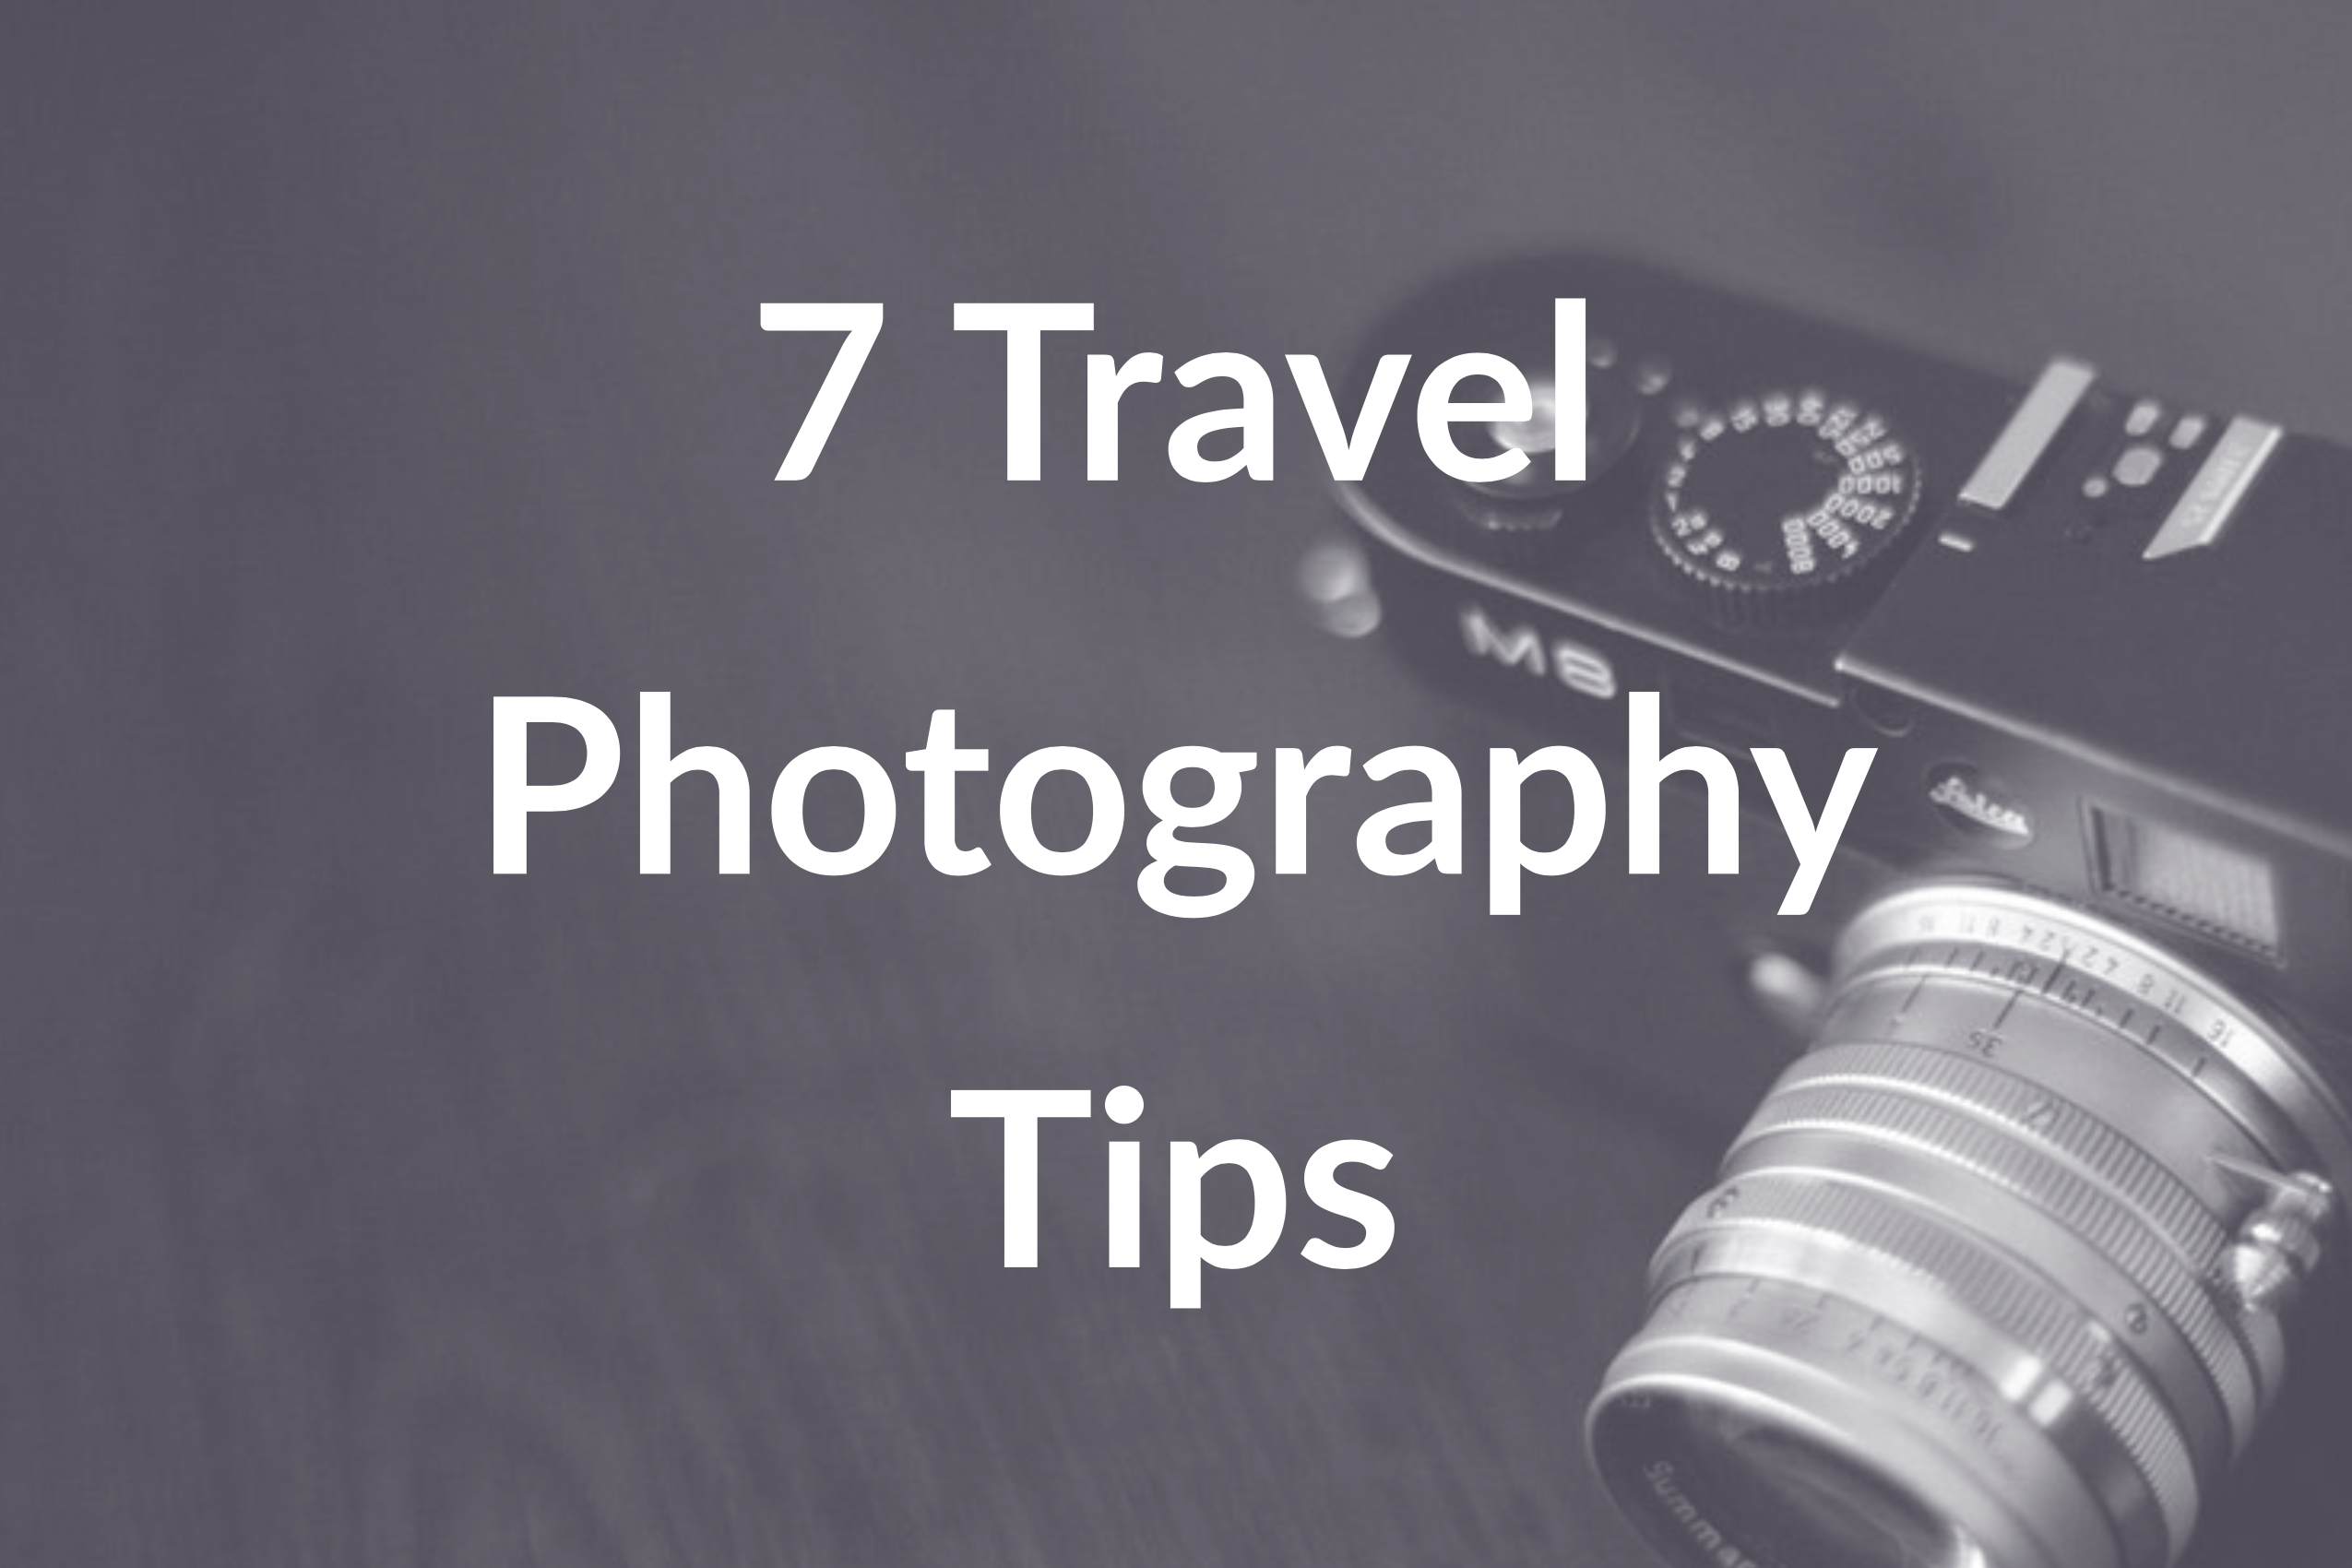 7 Travel Photography Tips for Taking Better Travel Photos